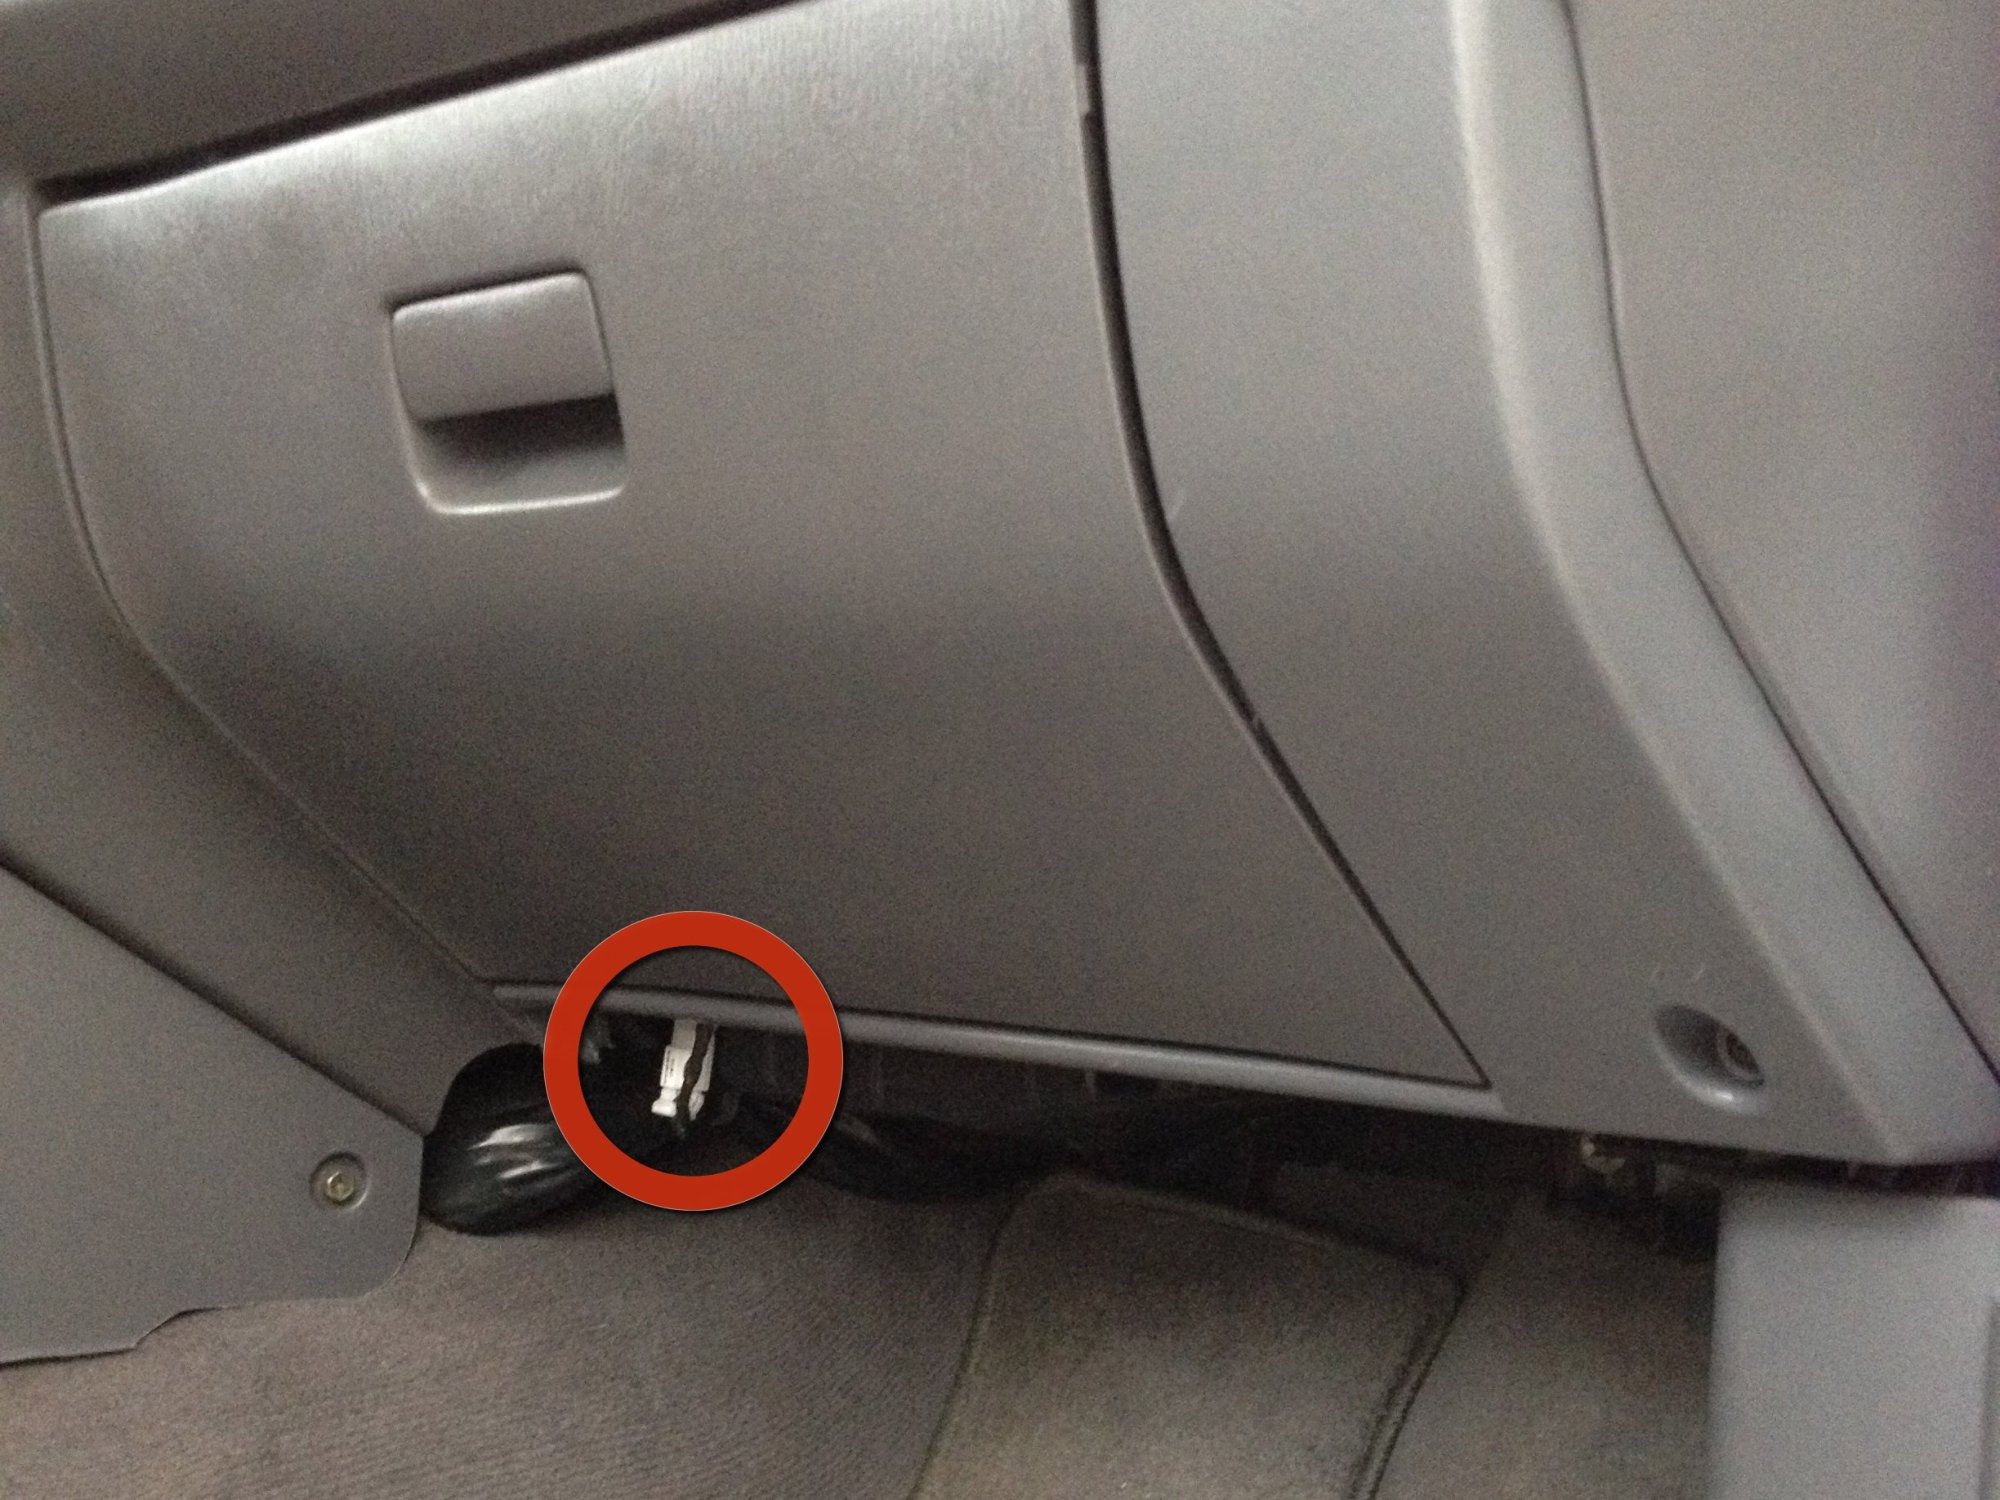 hight resolution of troubleshooting repairing the nissan xterra air conditioning